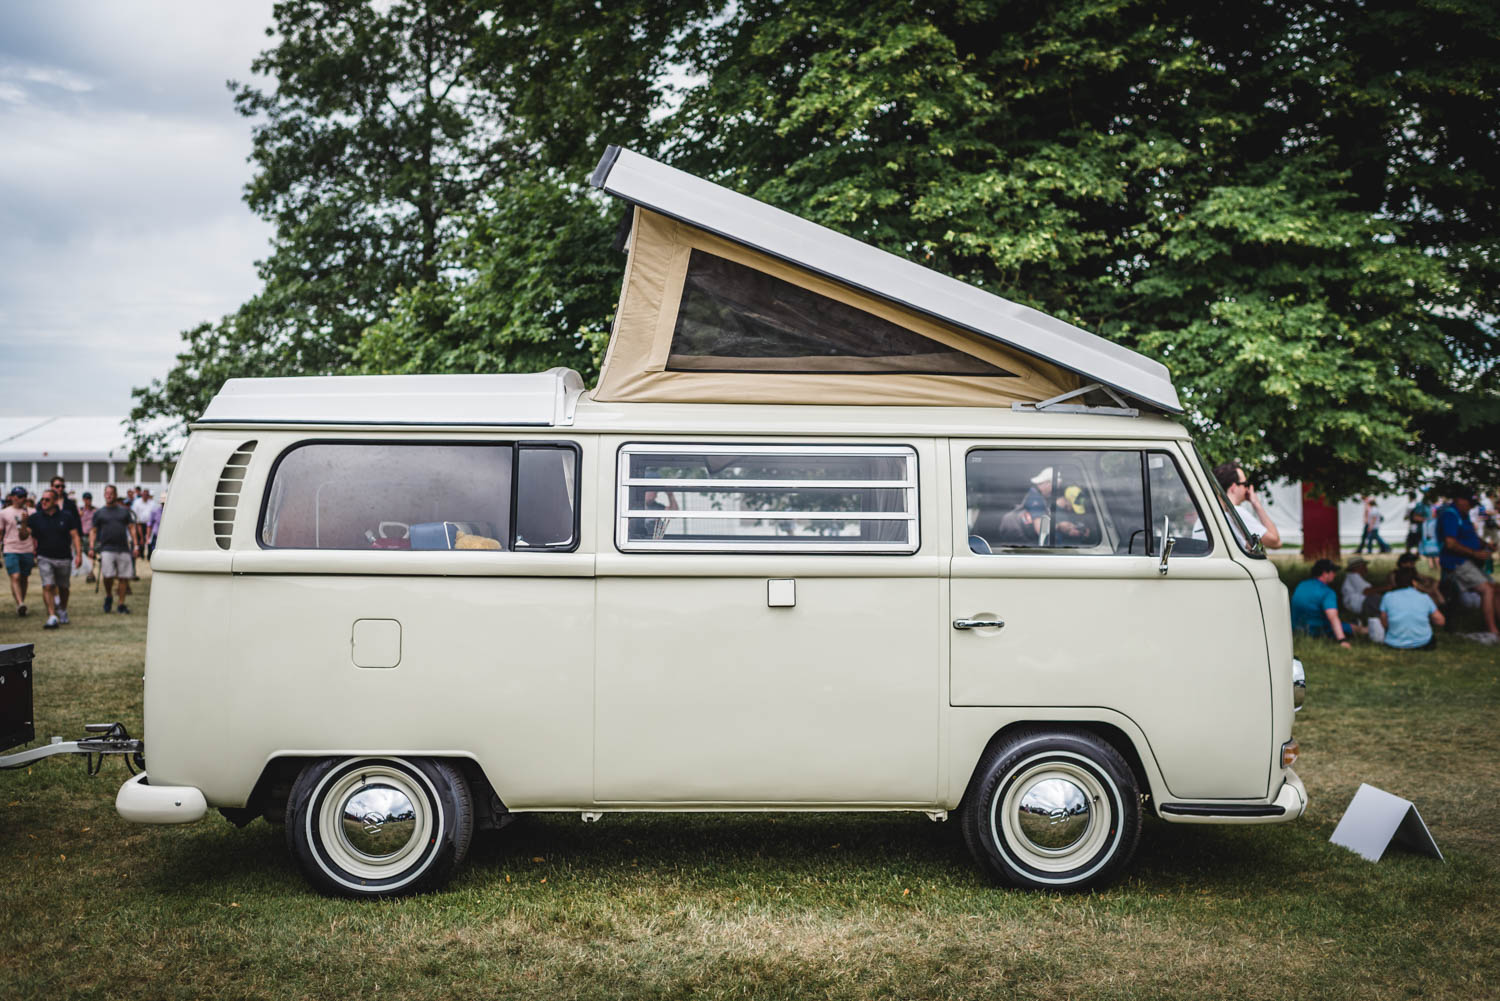 Stars in your eyes: How to buy a classic camper van